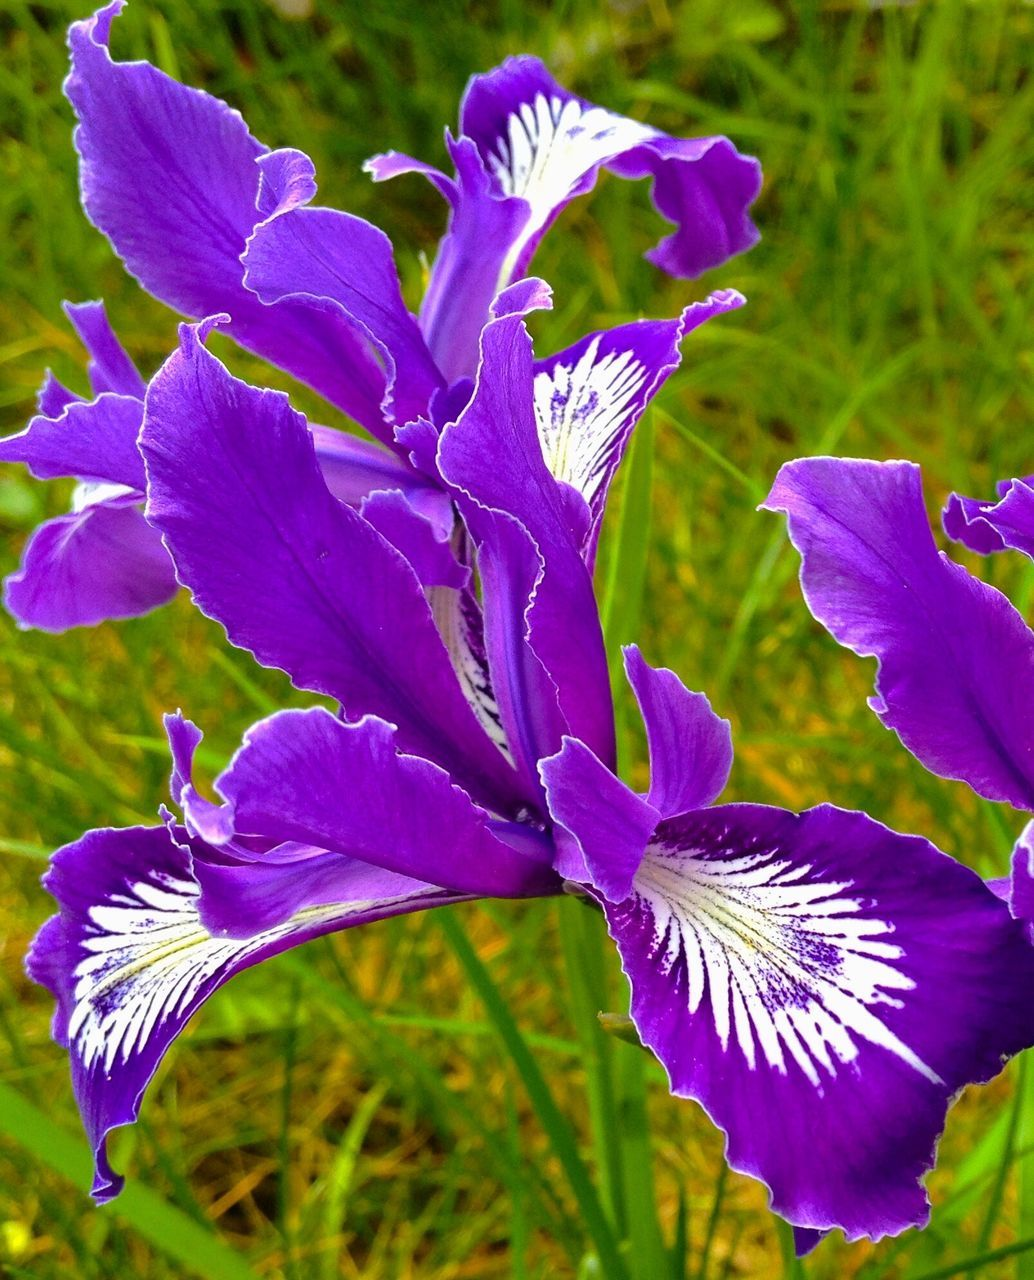 flower, growth, purple, petal, nature, beauty in nature, plant, fragility, no people, freshness, blooming, outdoors, close-up, iris - plant, day, flower head